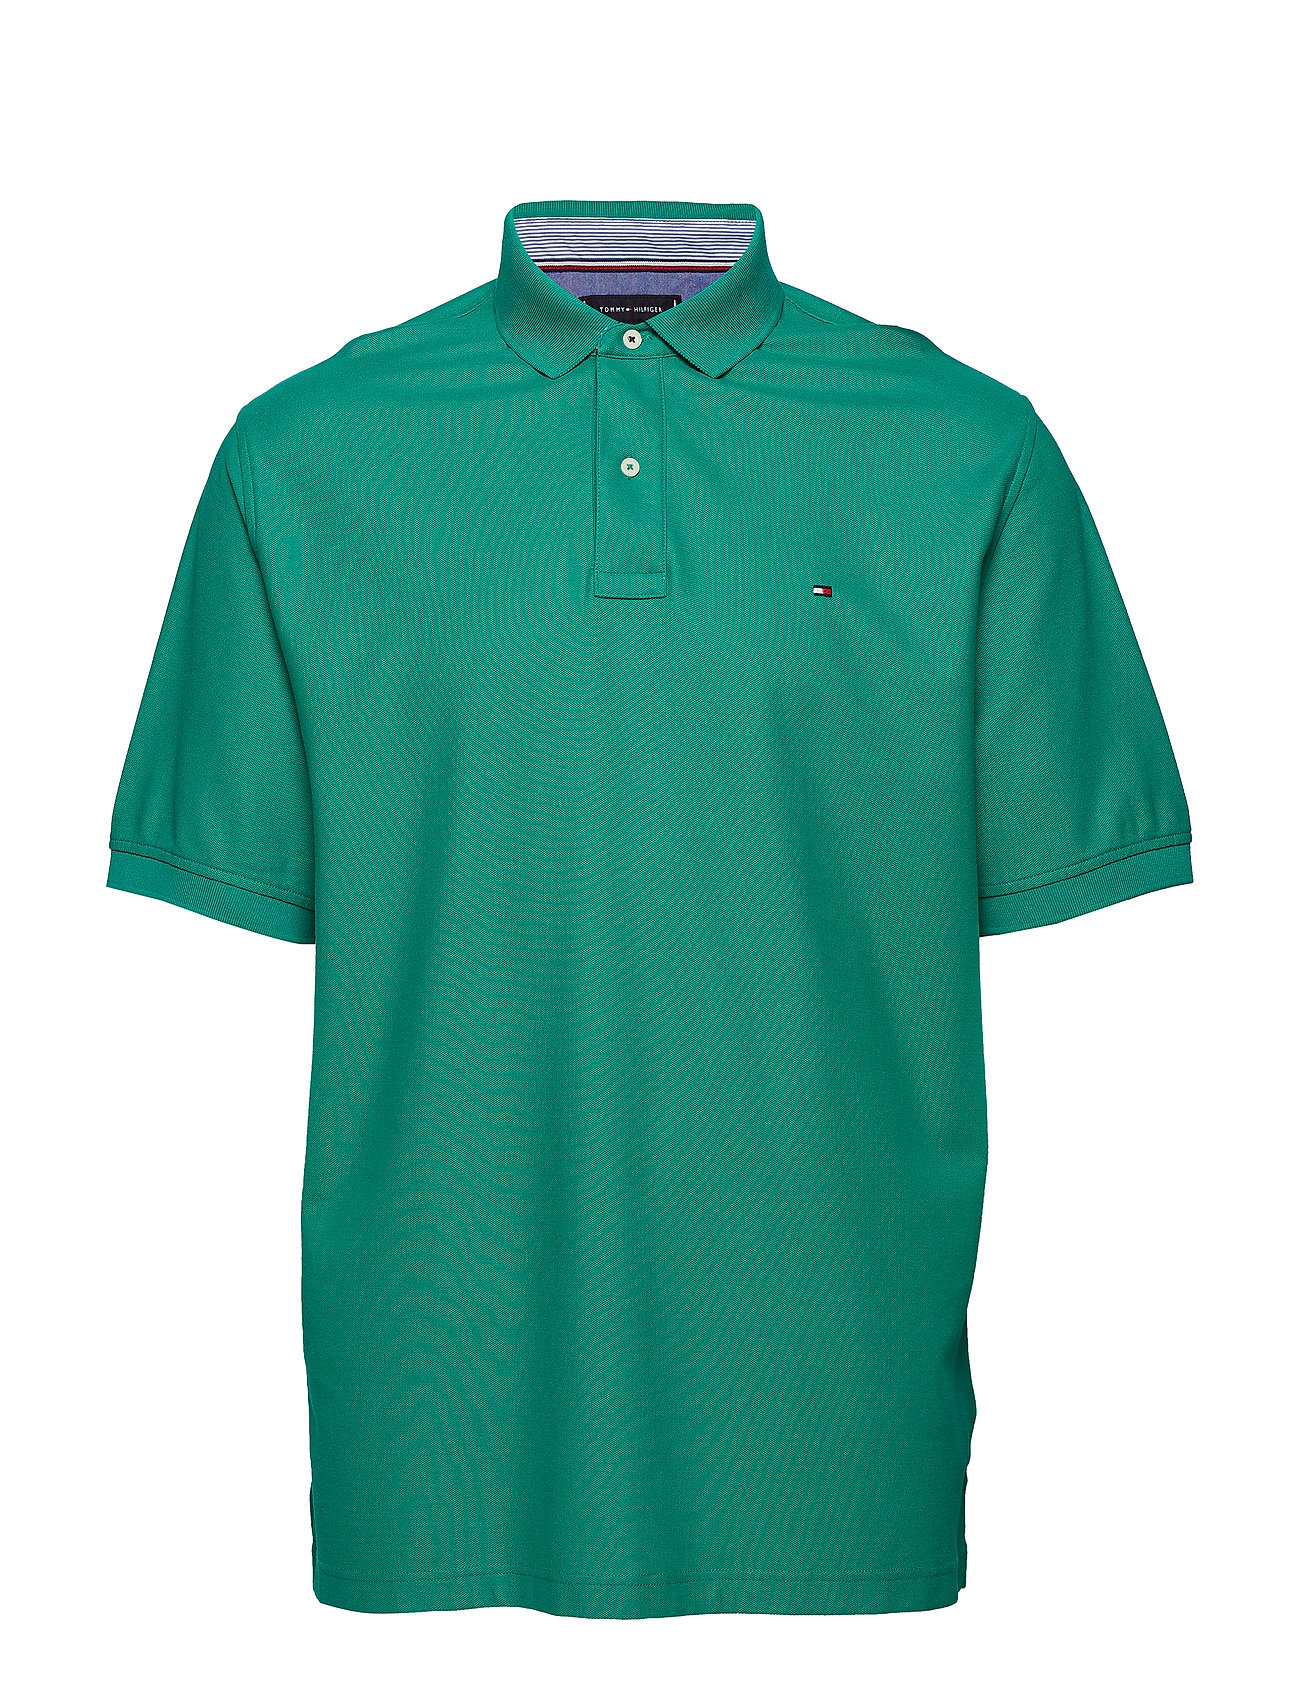 Tommy Hilfiger Big & Tall BT-HILFIGER POLO-B, - PEPPER GREEN